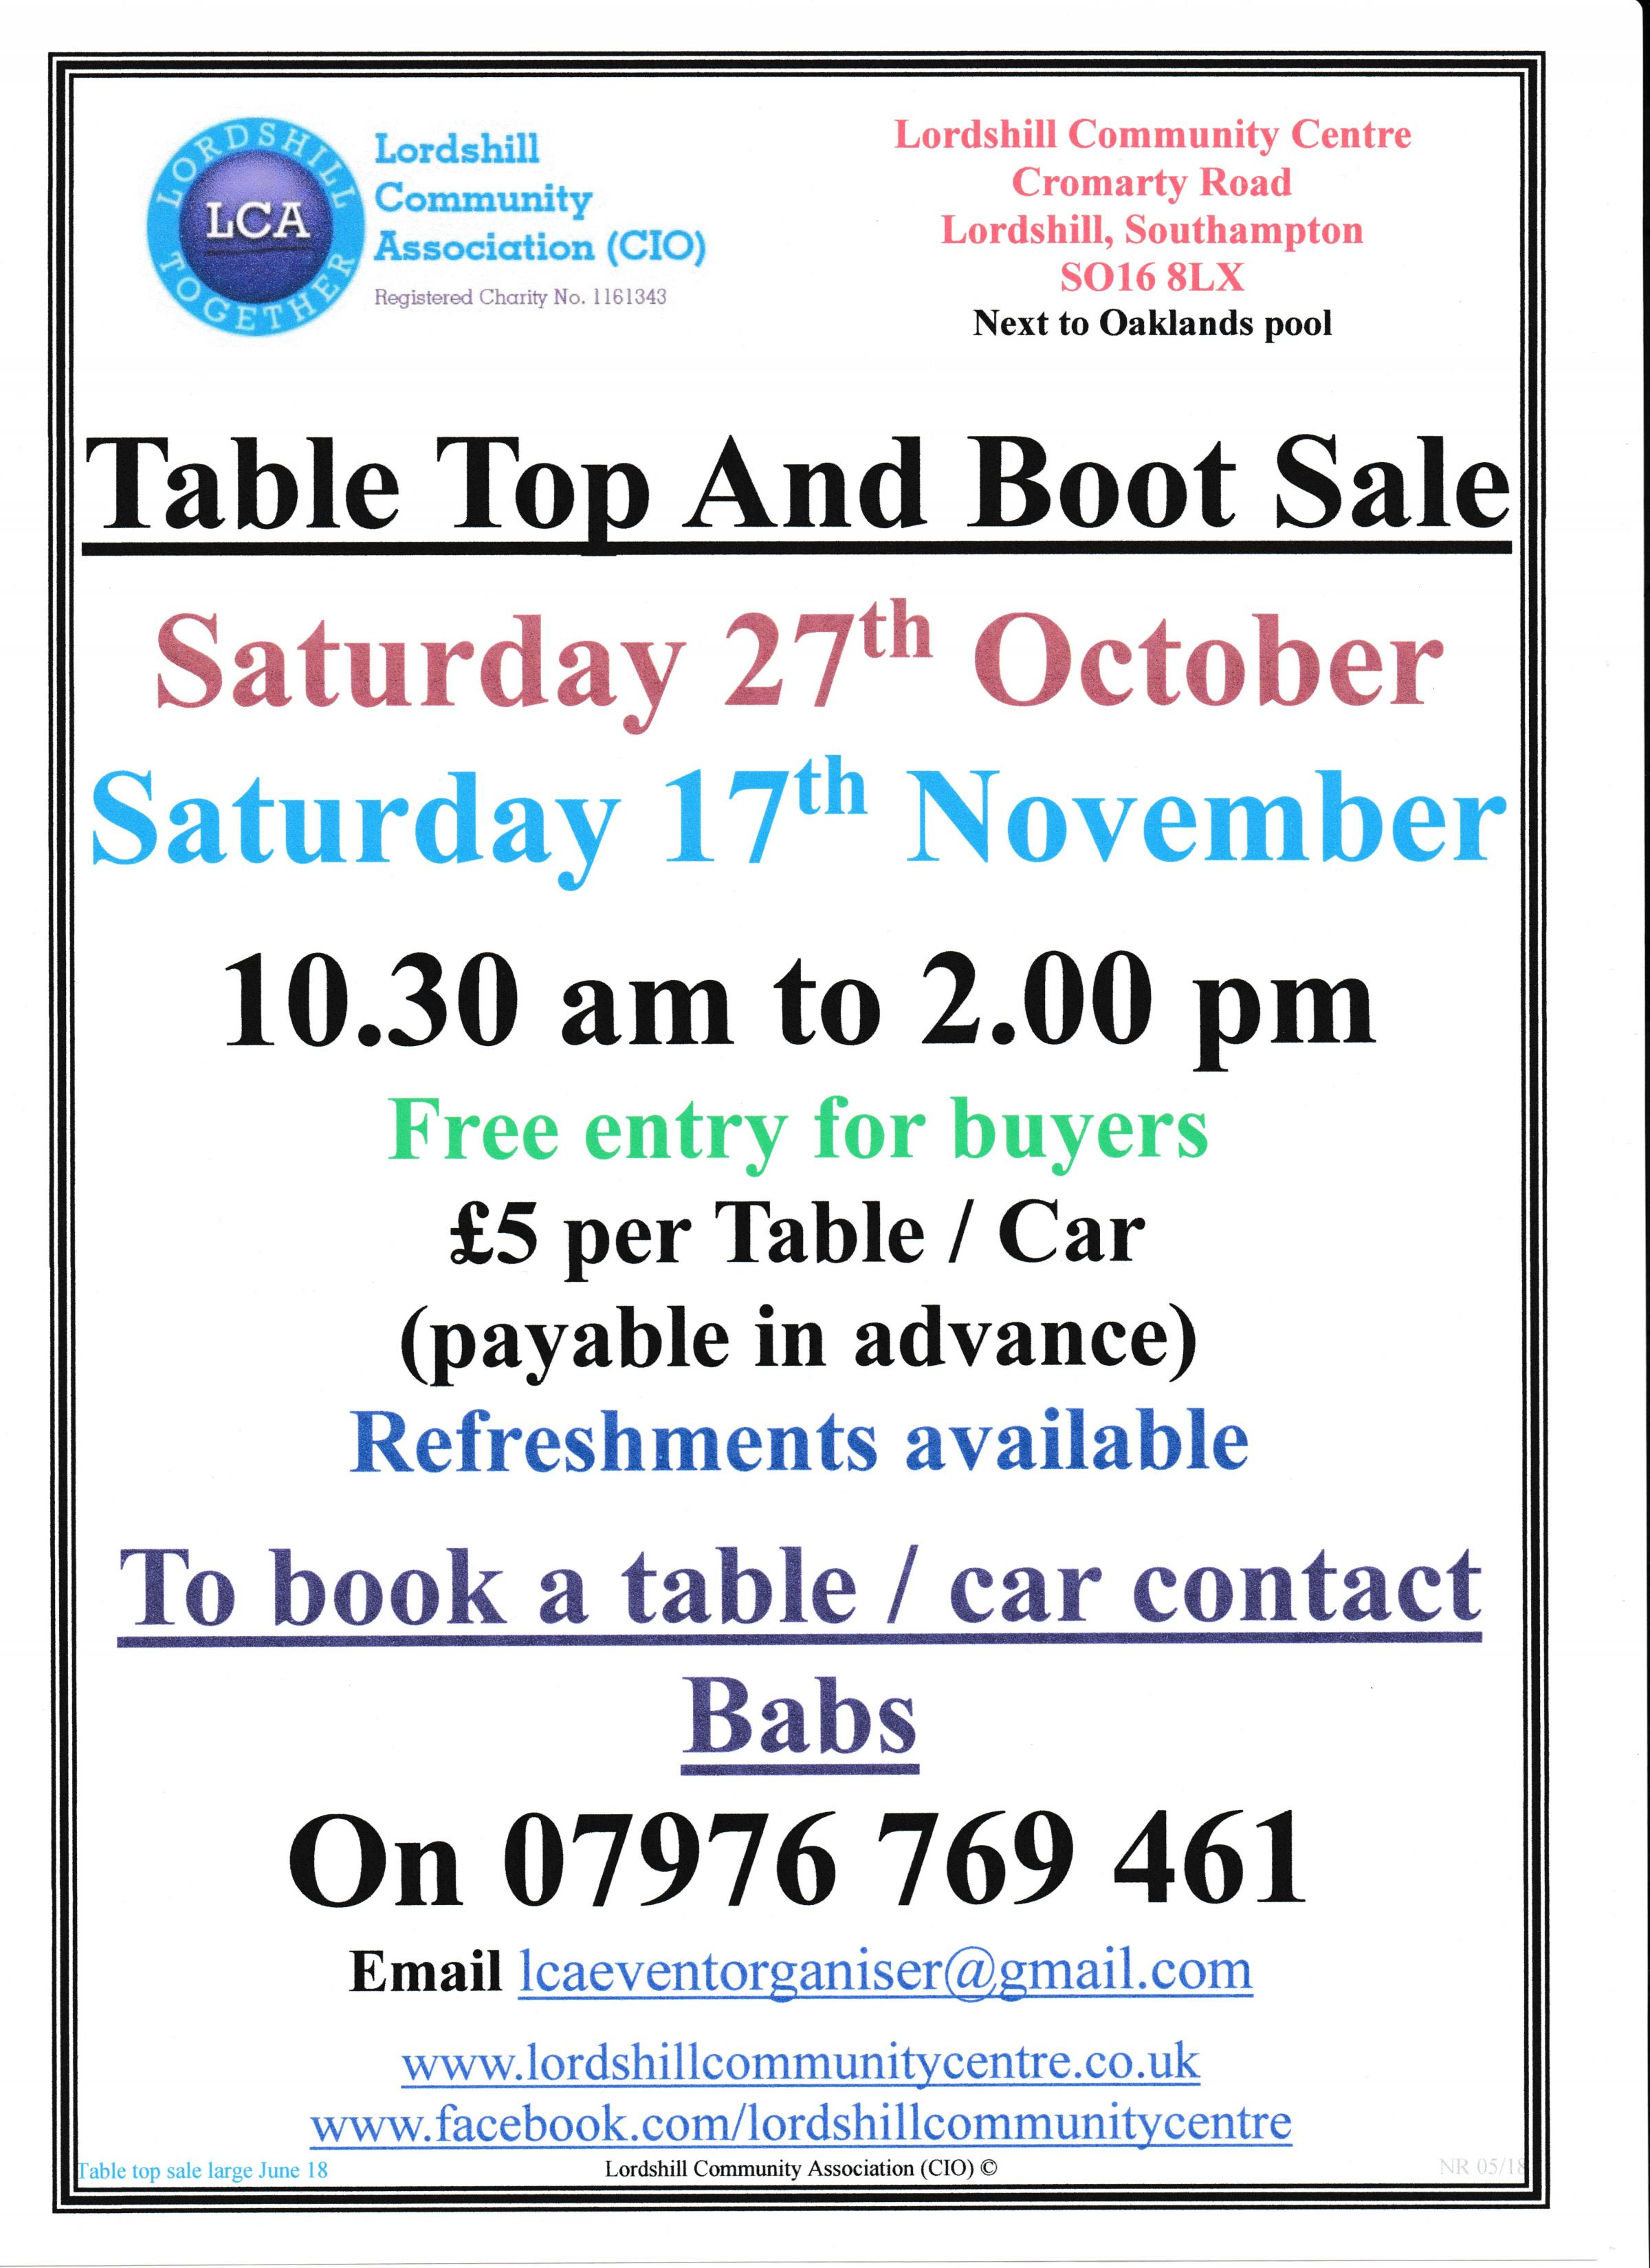 Table top and boot sale